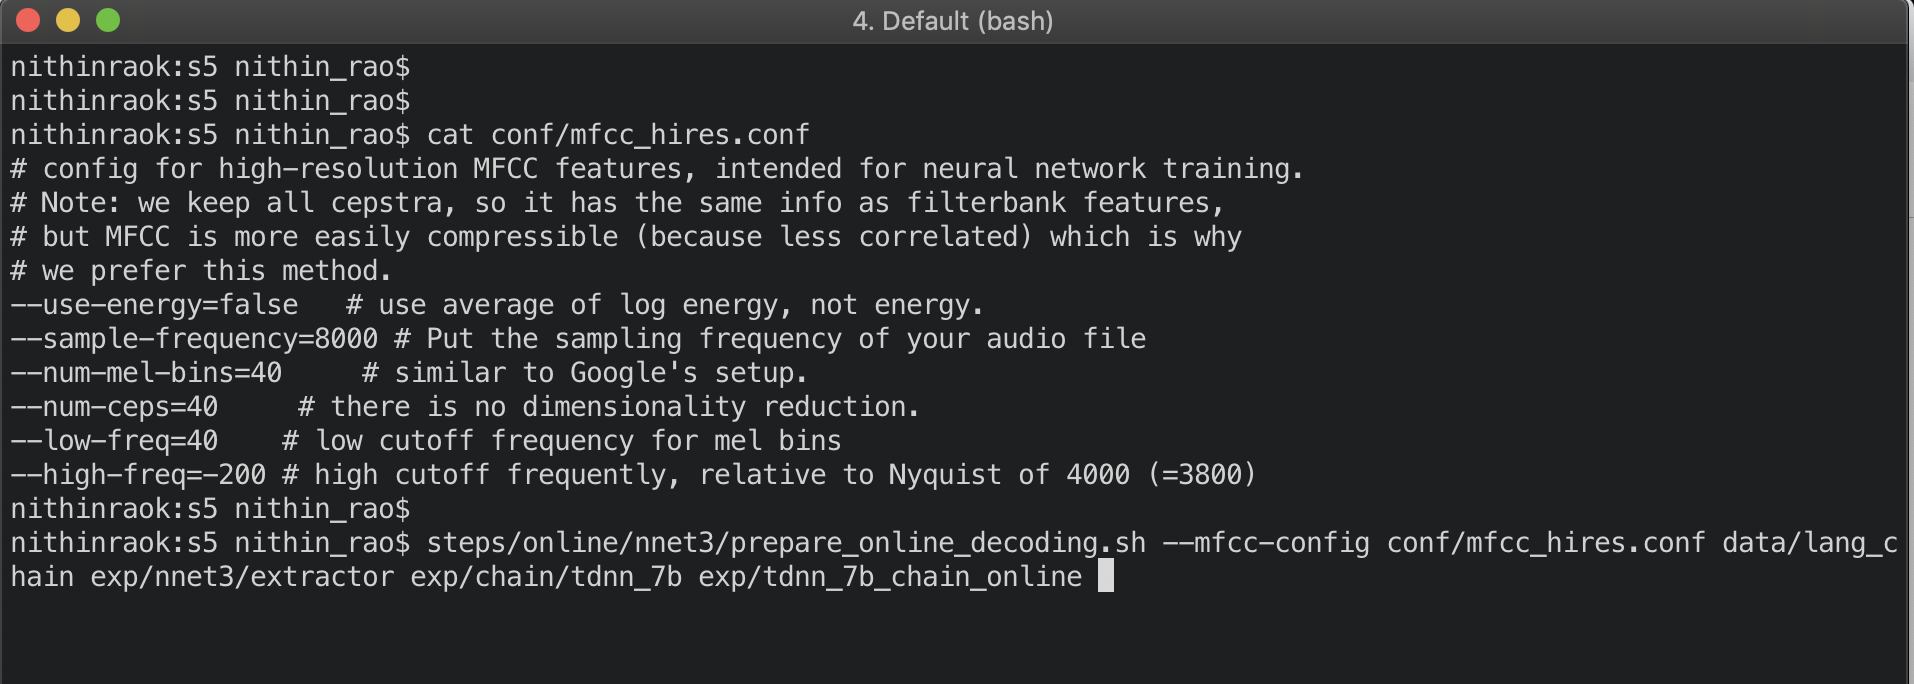 Decoding an audio file using a pre-trained model with Kaldi